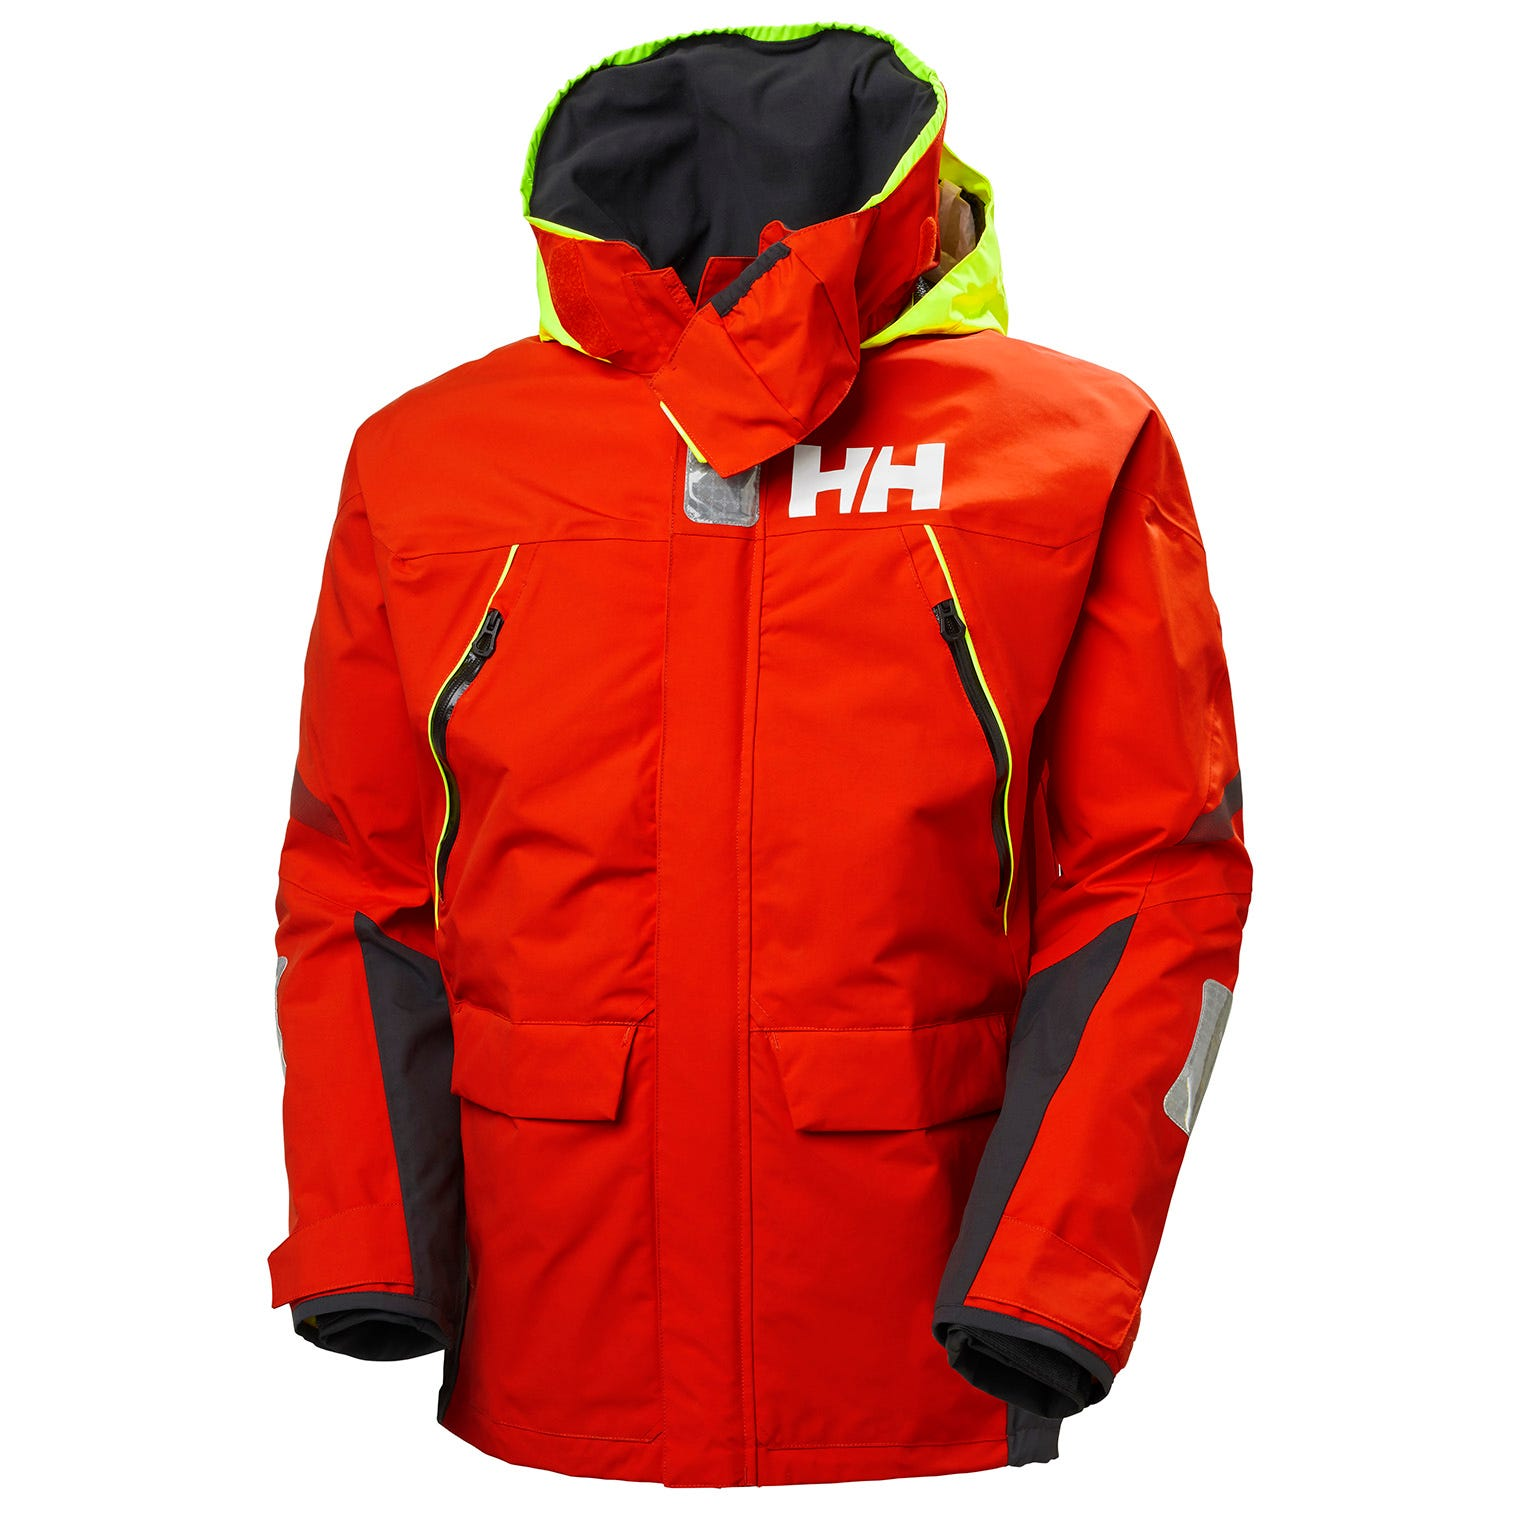 Mens Skagen Offshore Sailing Jacket | Helly Hansen Mens Red XL